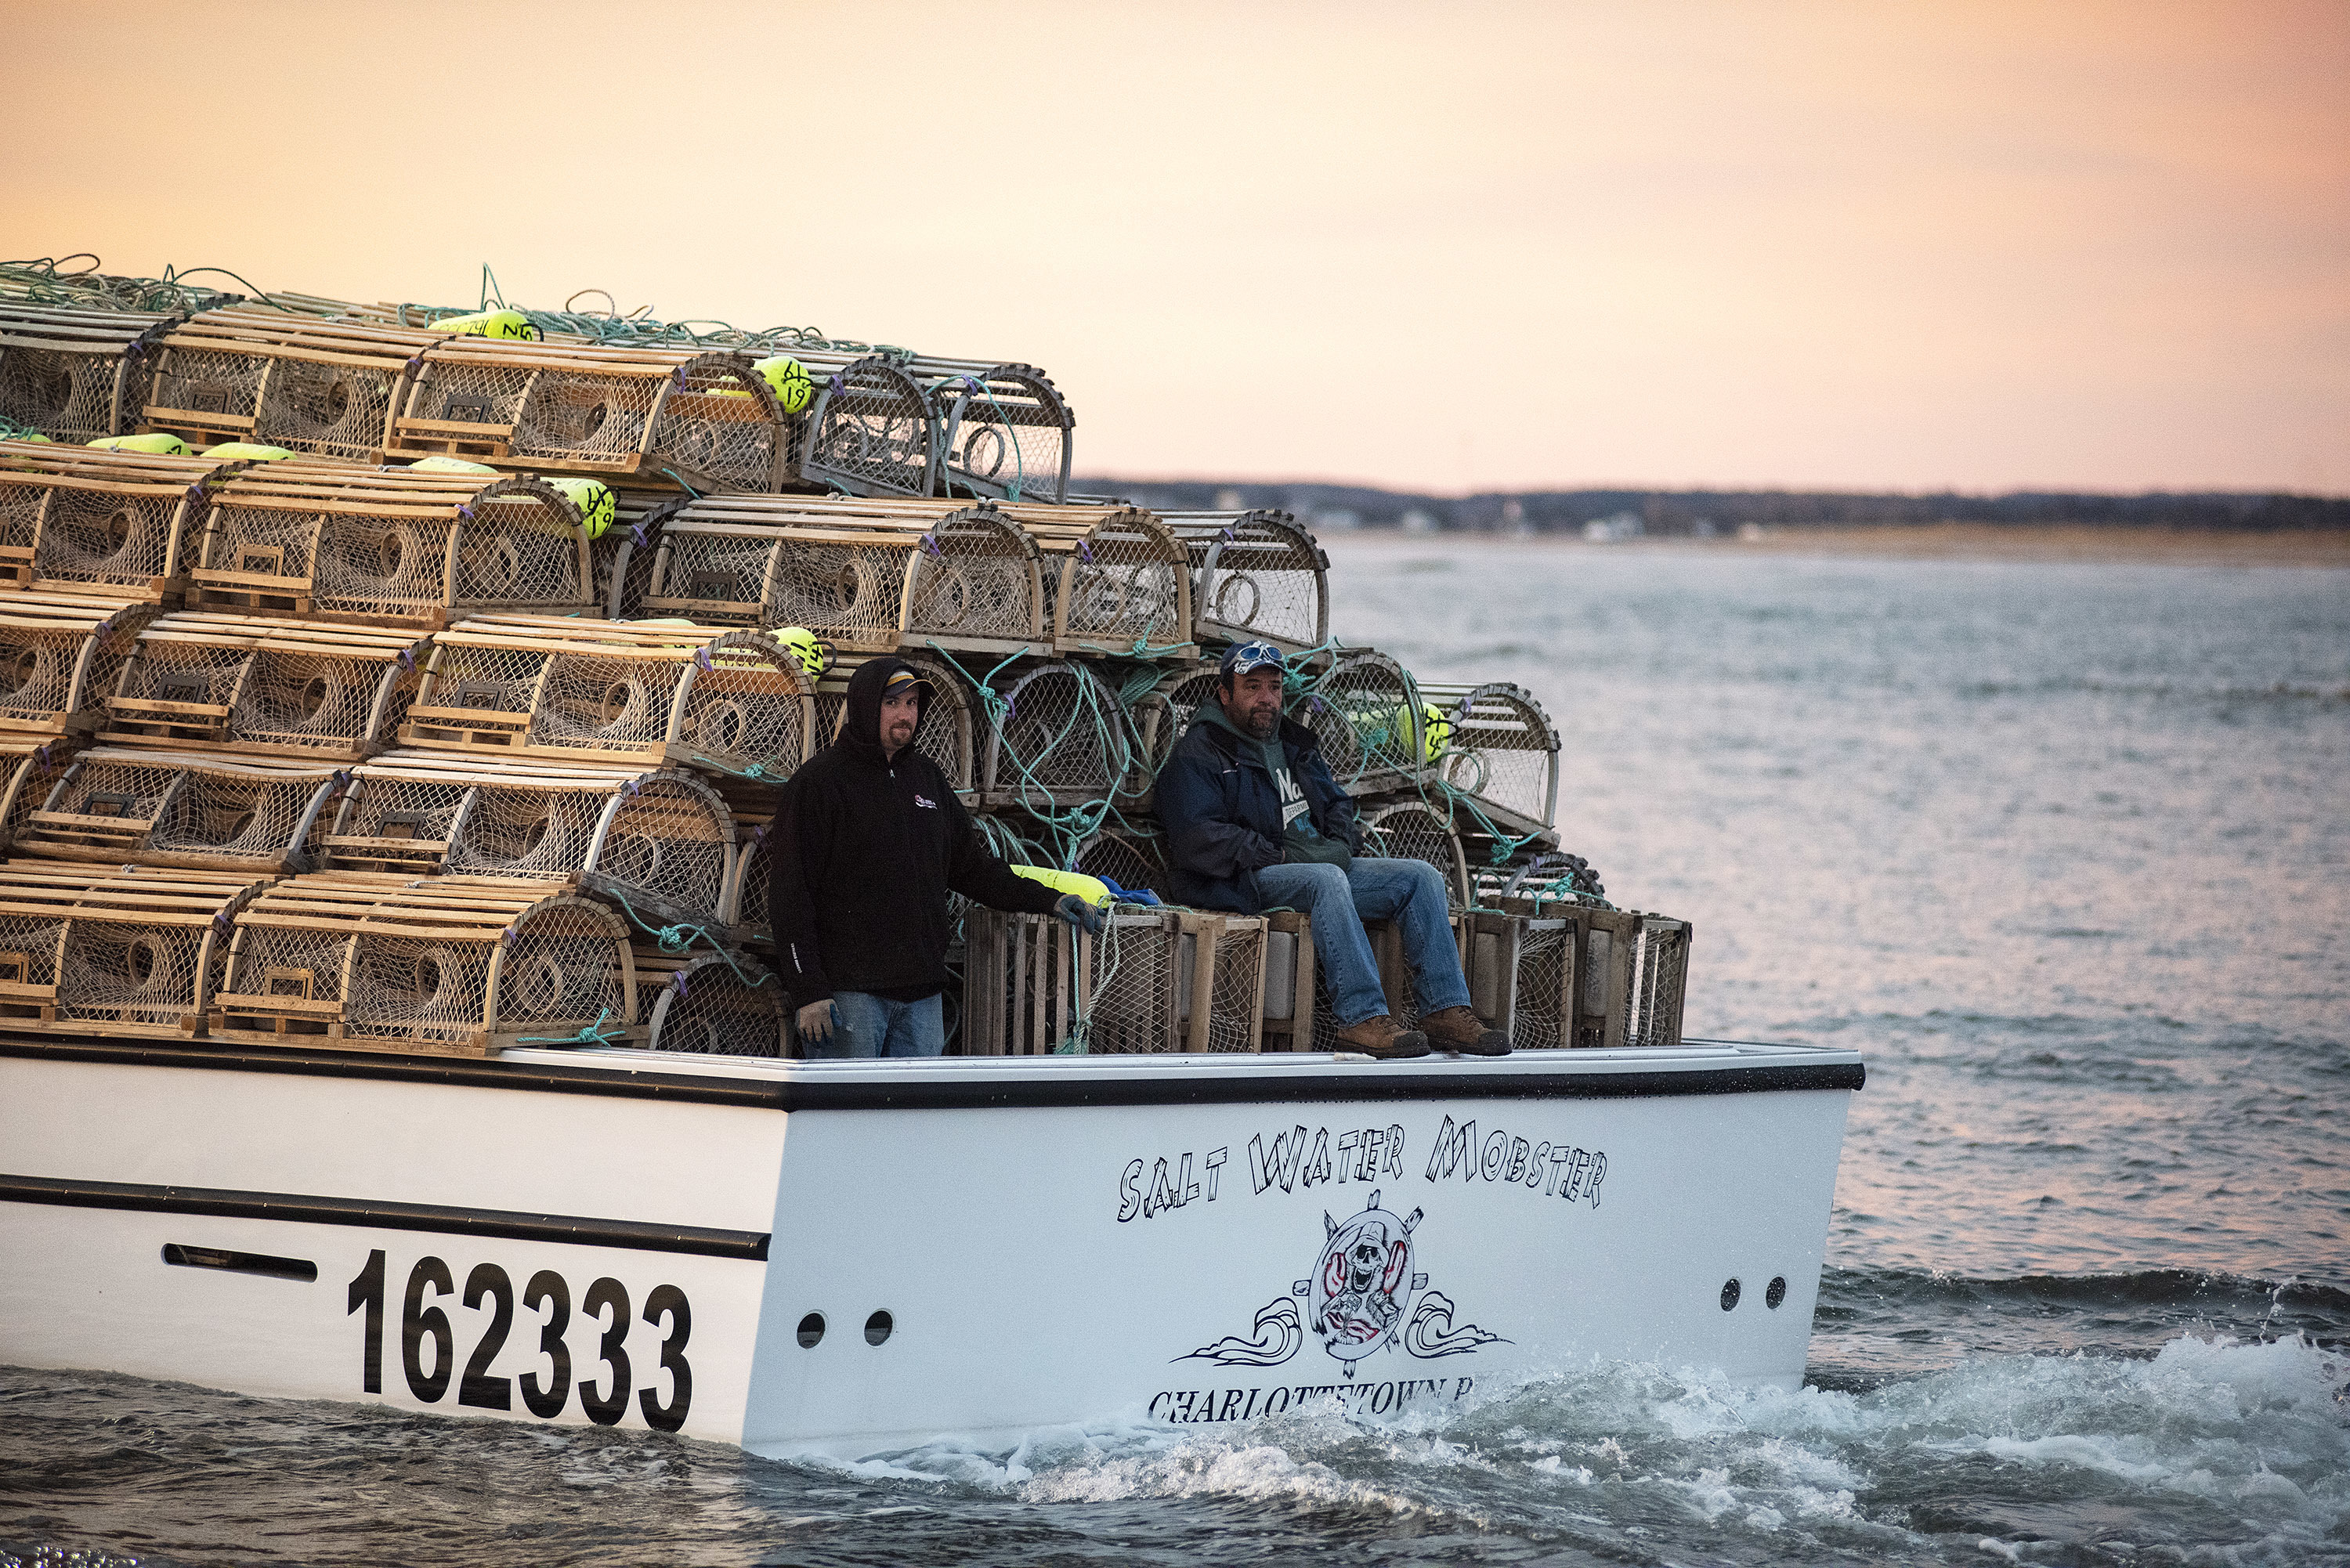 Crew members of Salt Water Mobster relax before the hard work begins as the boat heads out into the Gulf of St. Lawrence. (Brian McInnis)